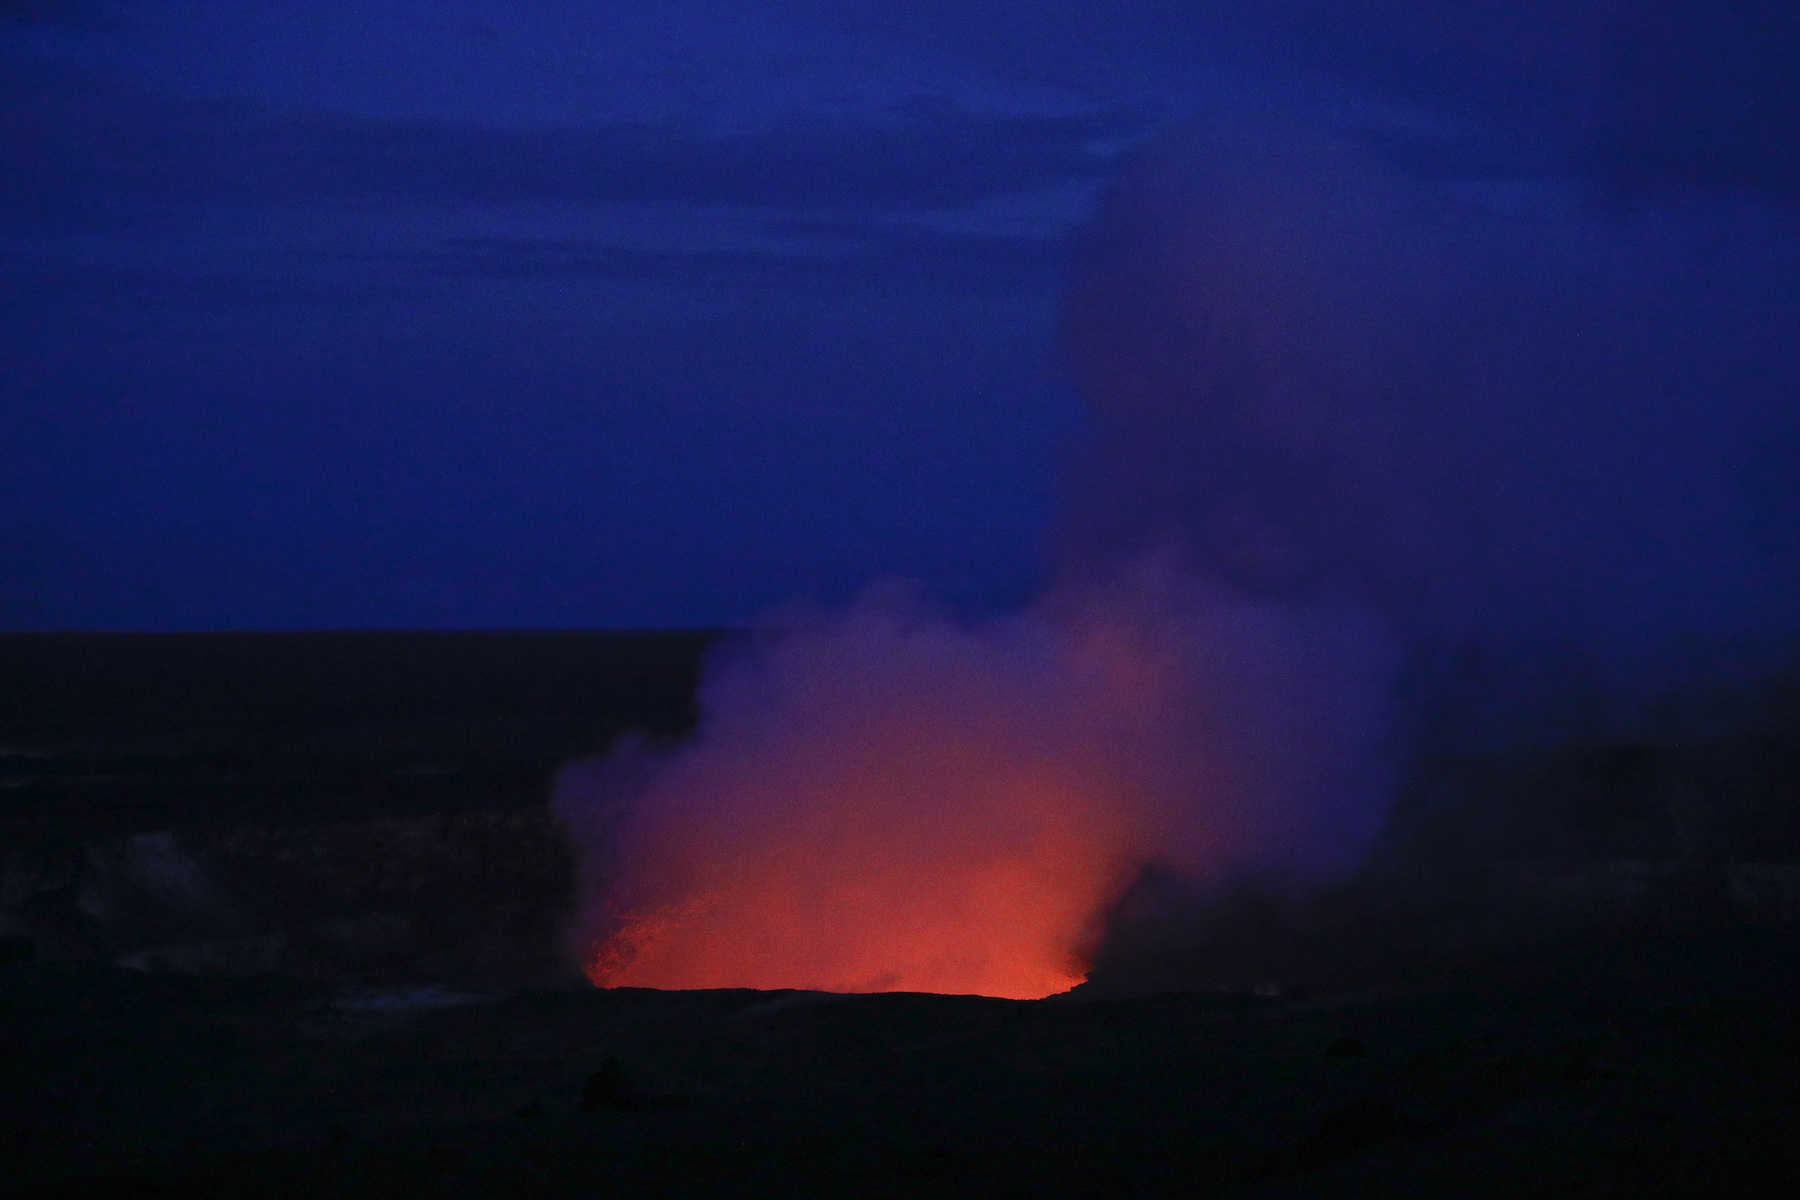 "<div class=""meta image-caption""><div class=""origin-logo origin-image ap""><span>AP</span></div><span class=""caption-text"">Kilauea's summit crater glows red in Volcanoes National Park, Hawaii. Wednesday, May 9, 2018. (AP Photo/Jae C. Hong)</span></div>"